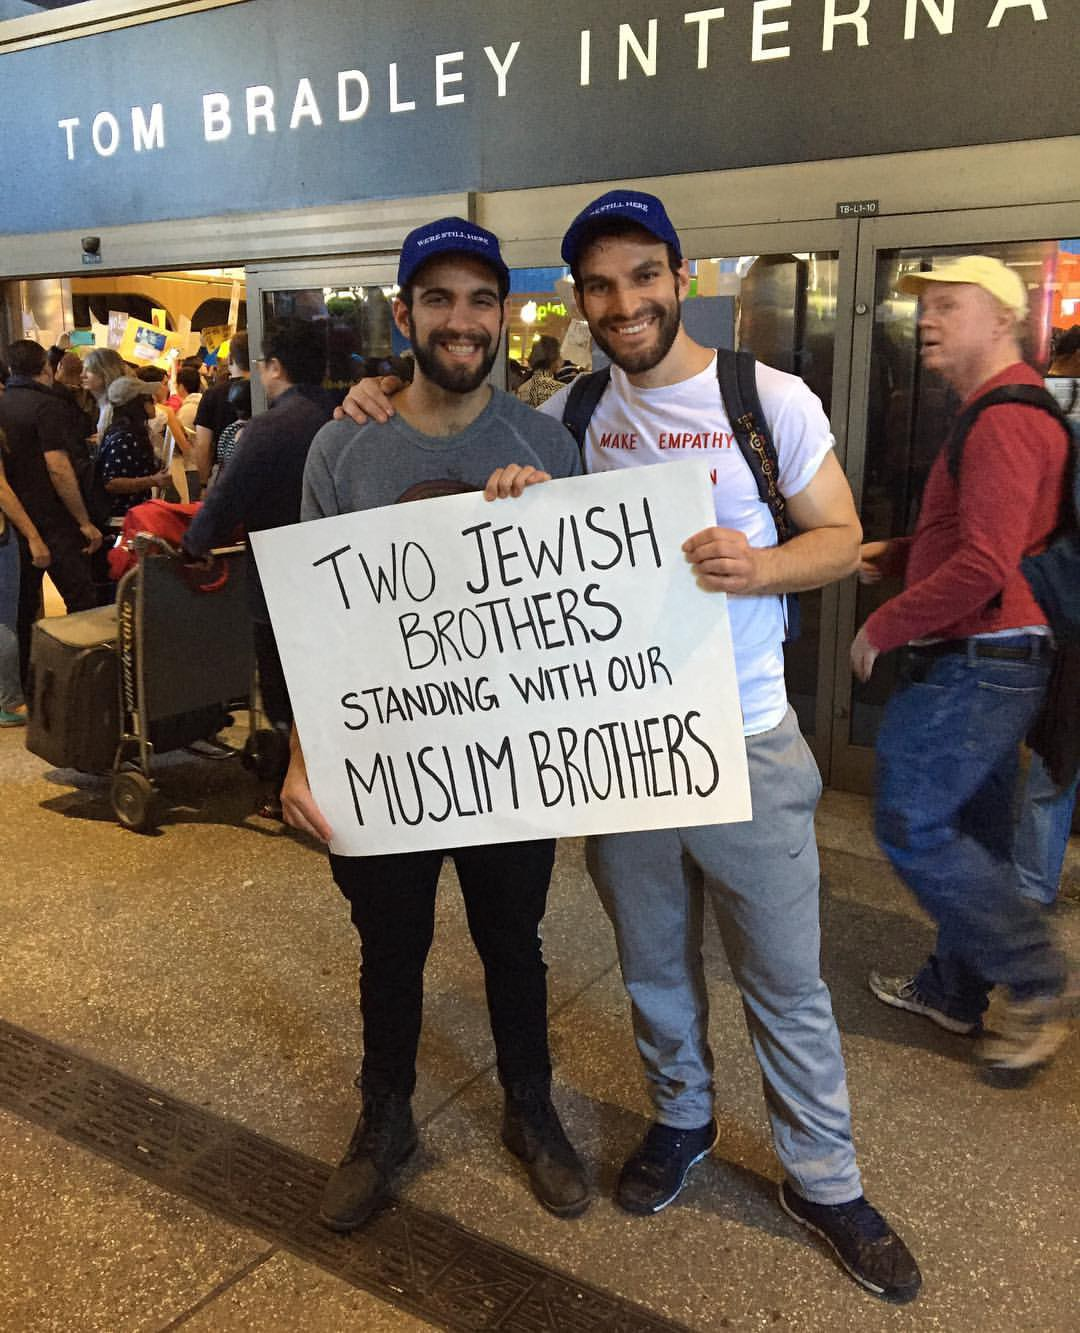 Two Jewish Brothers Standing with Our Muslim Brothers | by Noah Reich | Medium